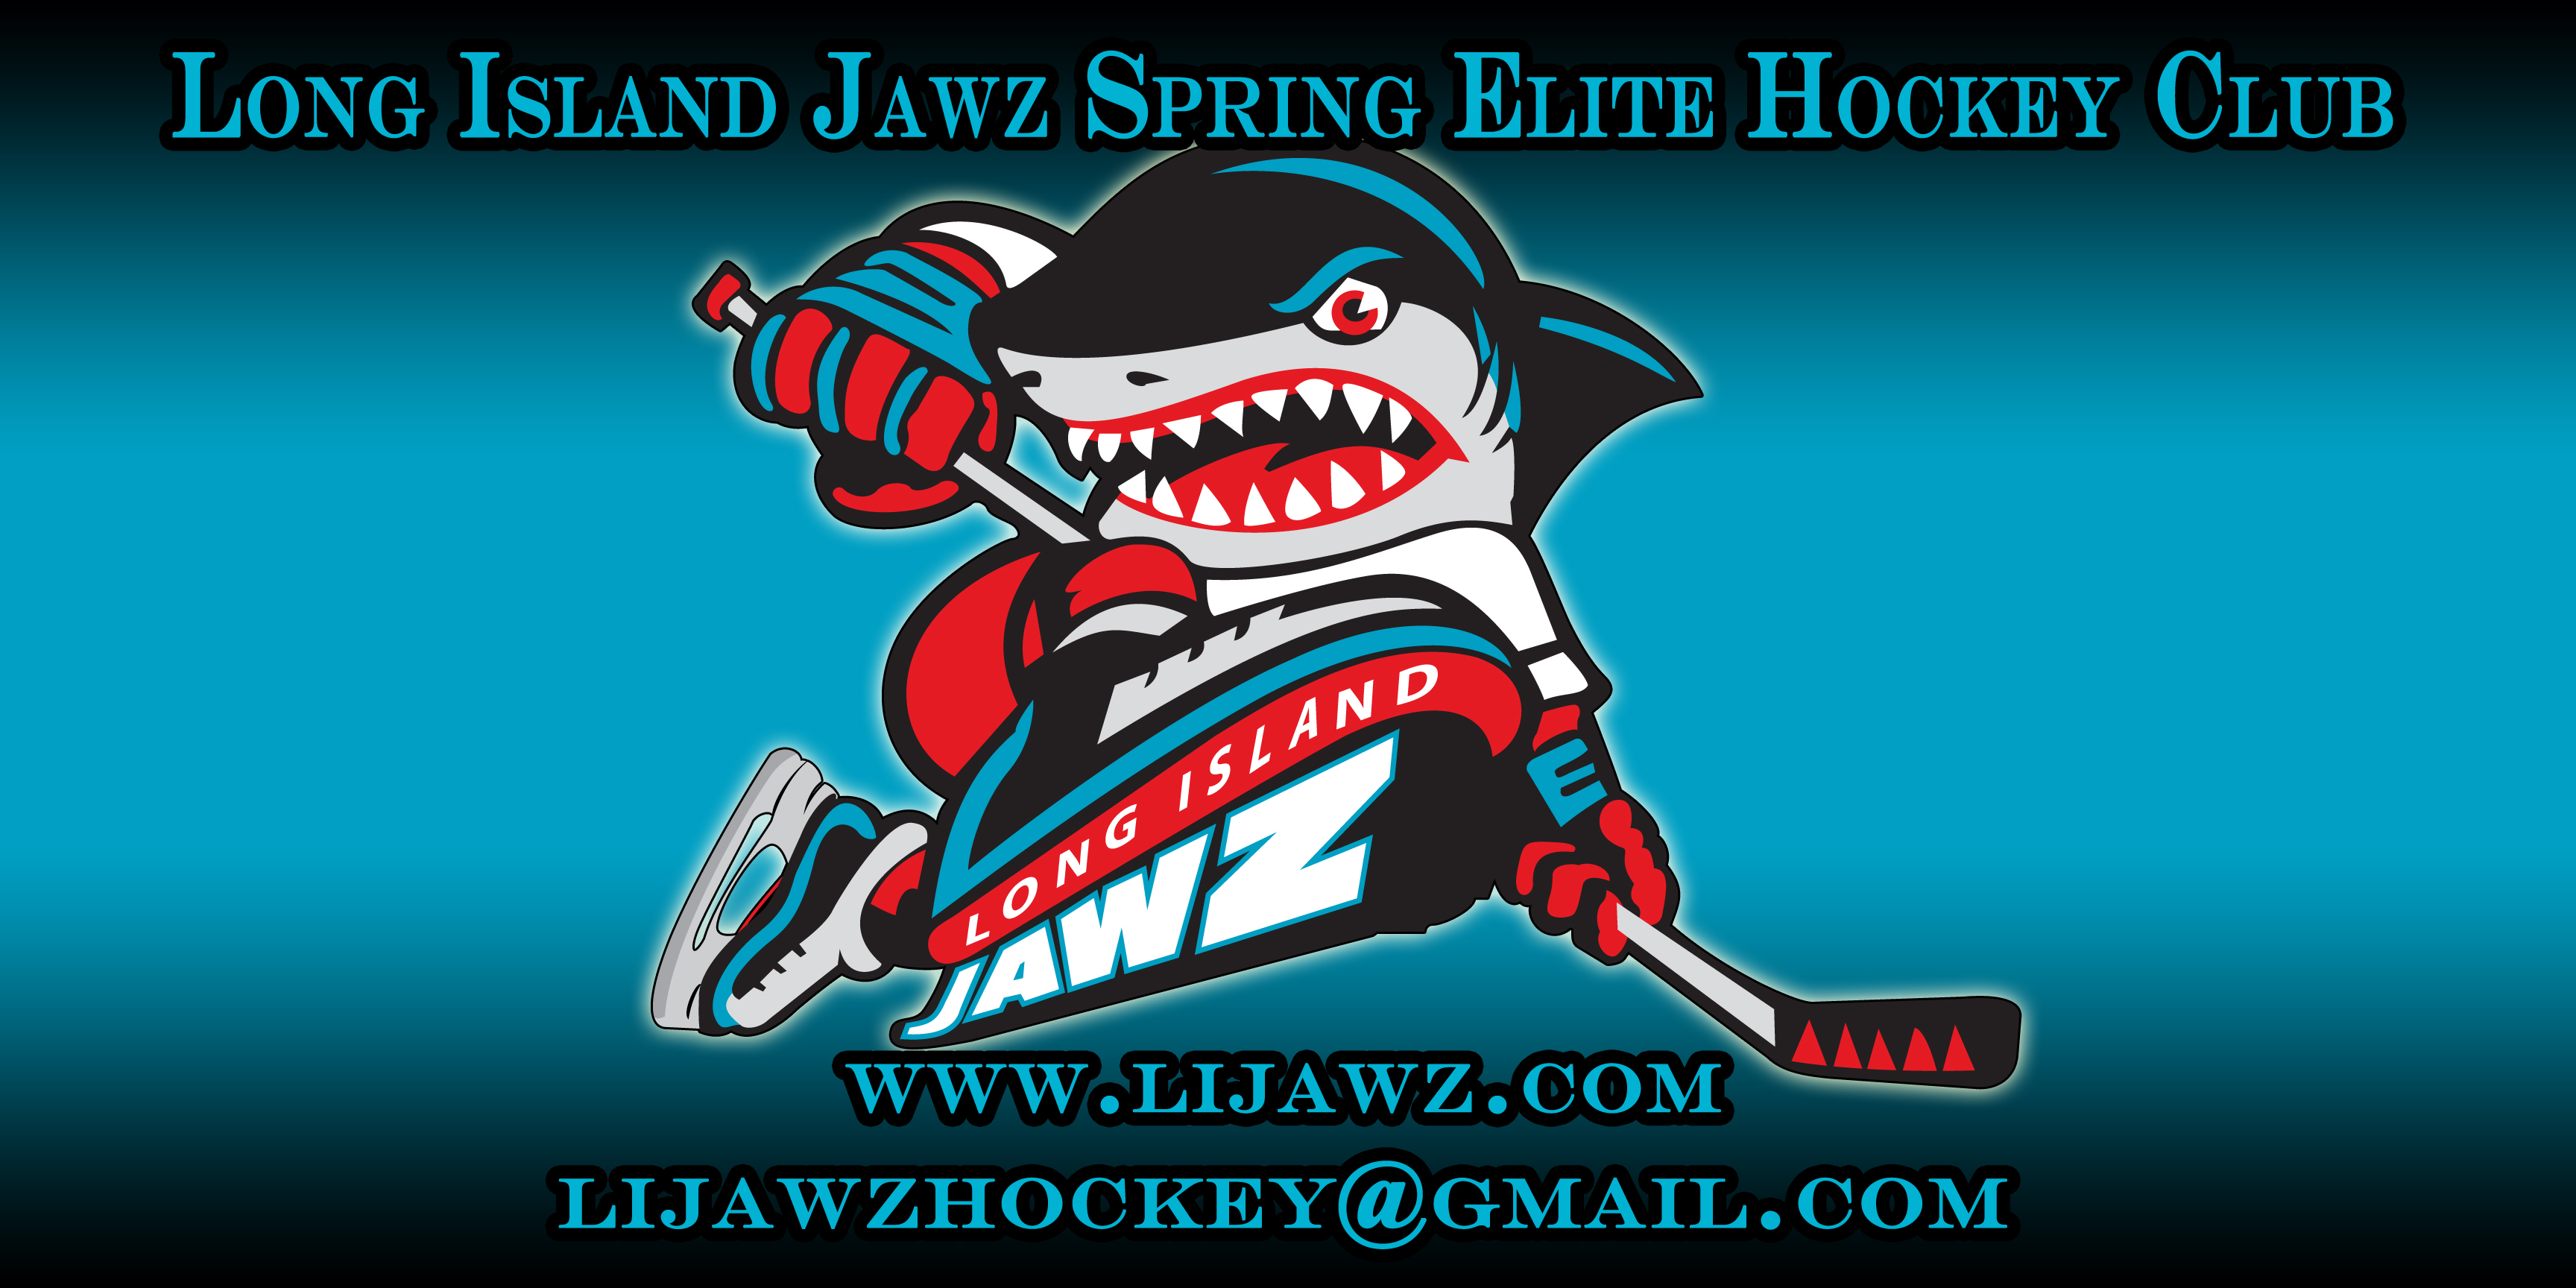 Long Island Jawz Spring Elite Hockey Club, Hockey, Goal, Rink